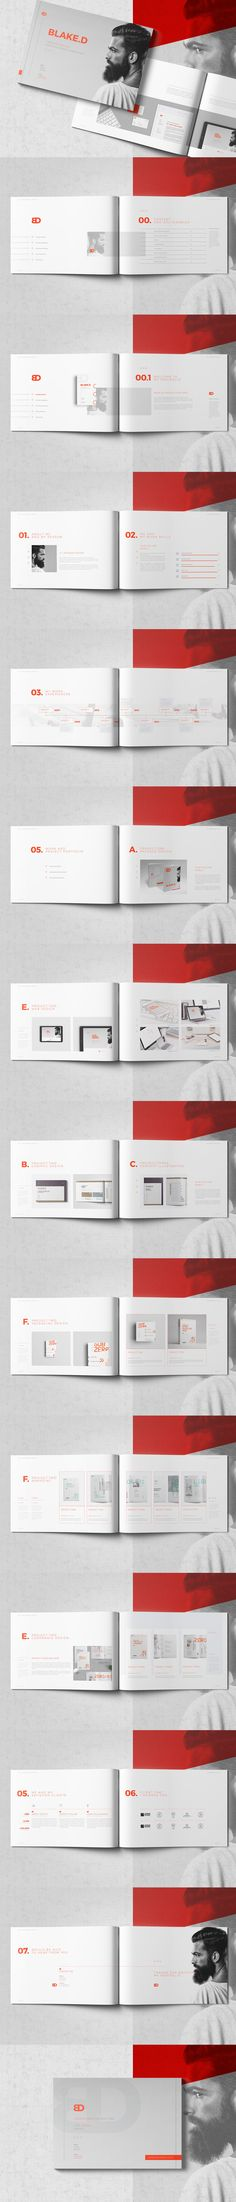 Professional & Creative Multipurpose Portfolio Brochure Template InDesign INDD - 28 Pages, A4 & US Letter Size